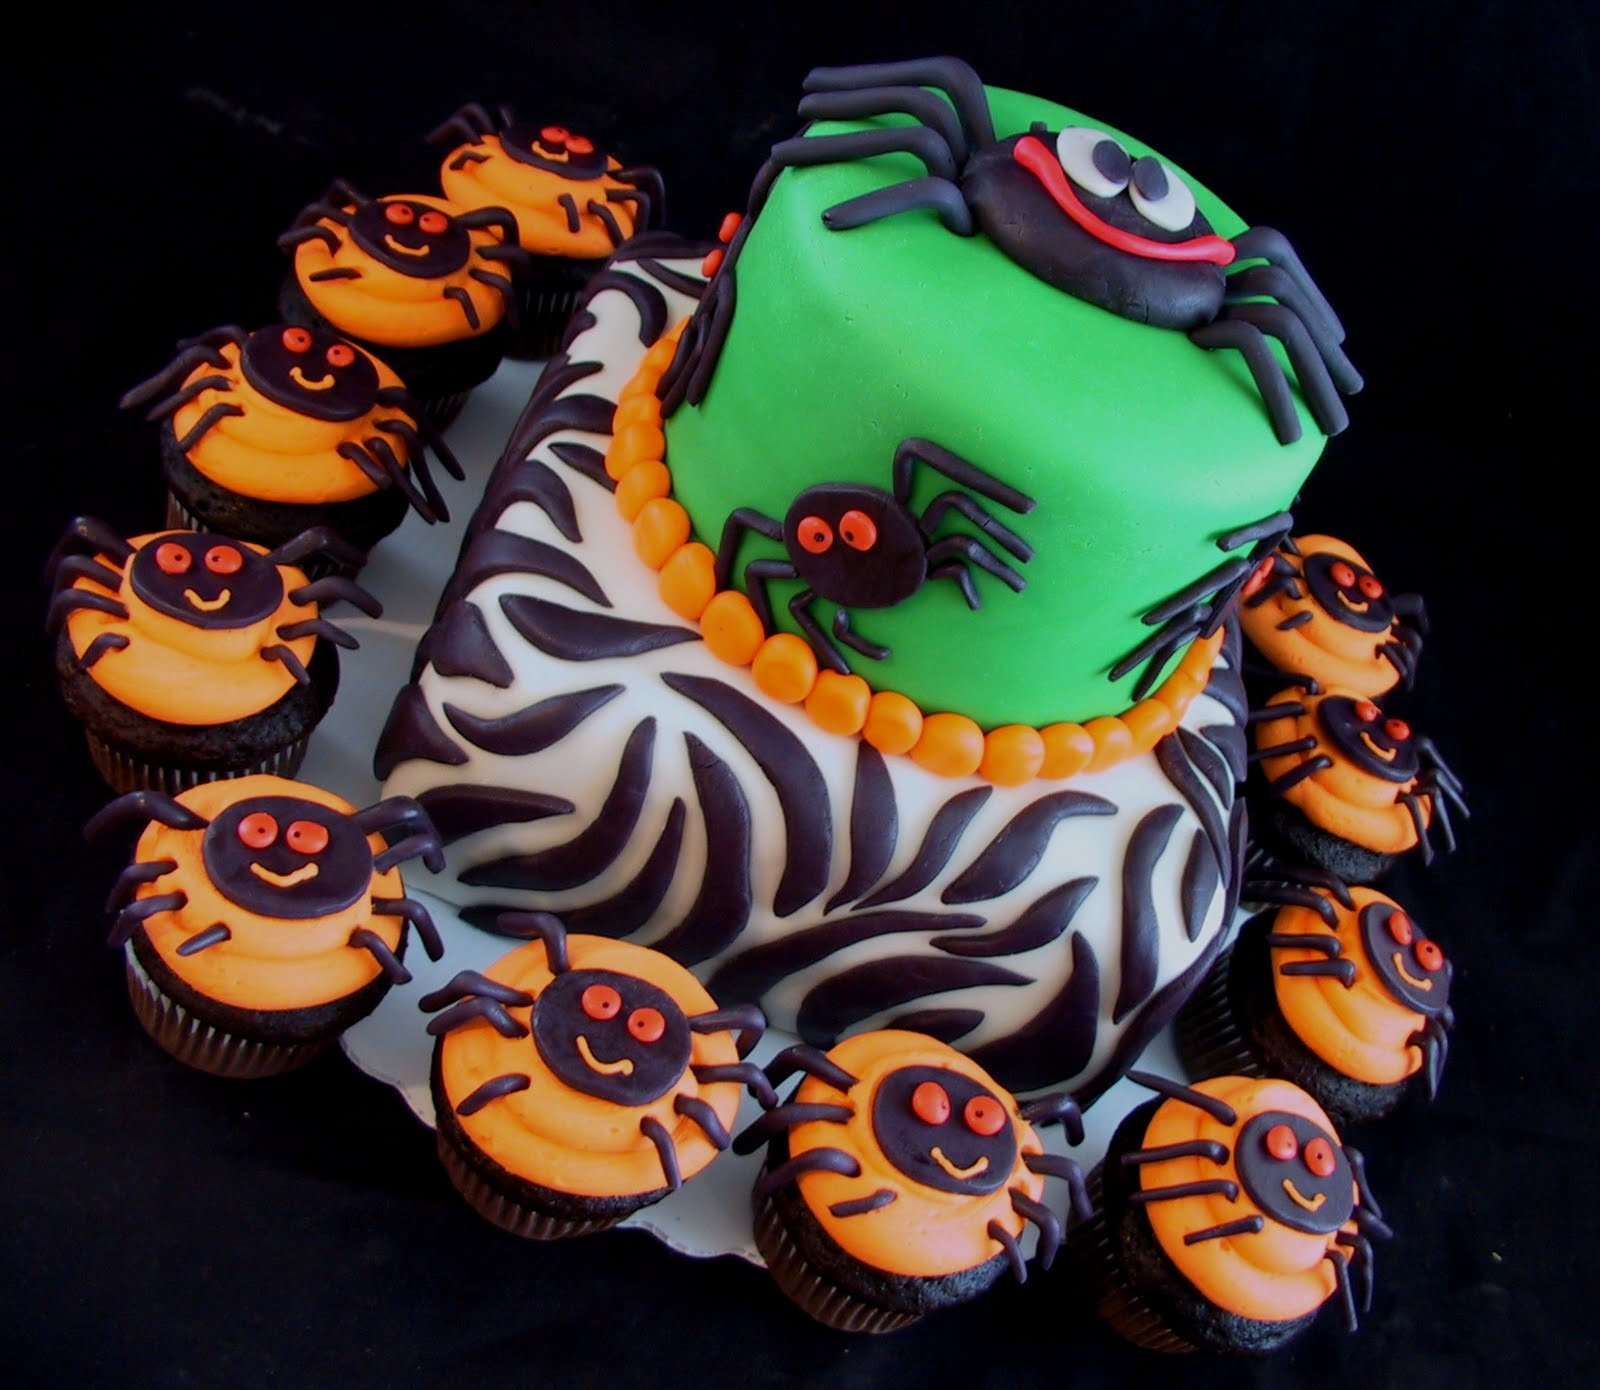 Cakes For Halloween  Birthday Cake Center Halloween Birthday Cakes 2011